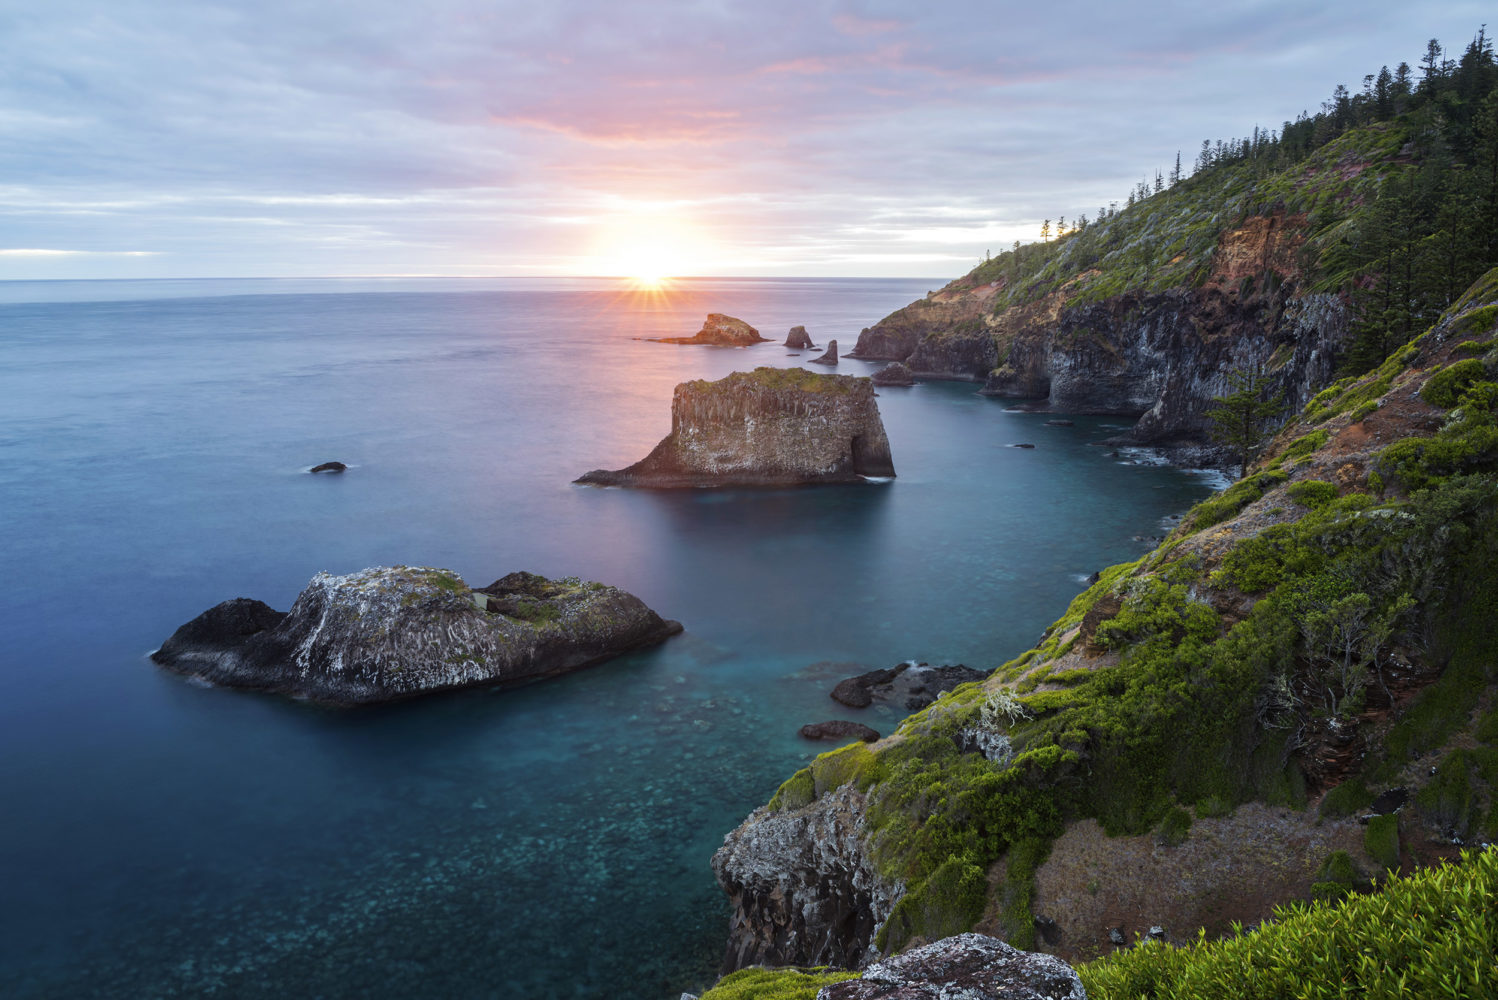 Norfolk Island: A Small Wonder in the Pacific